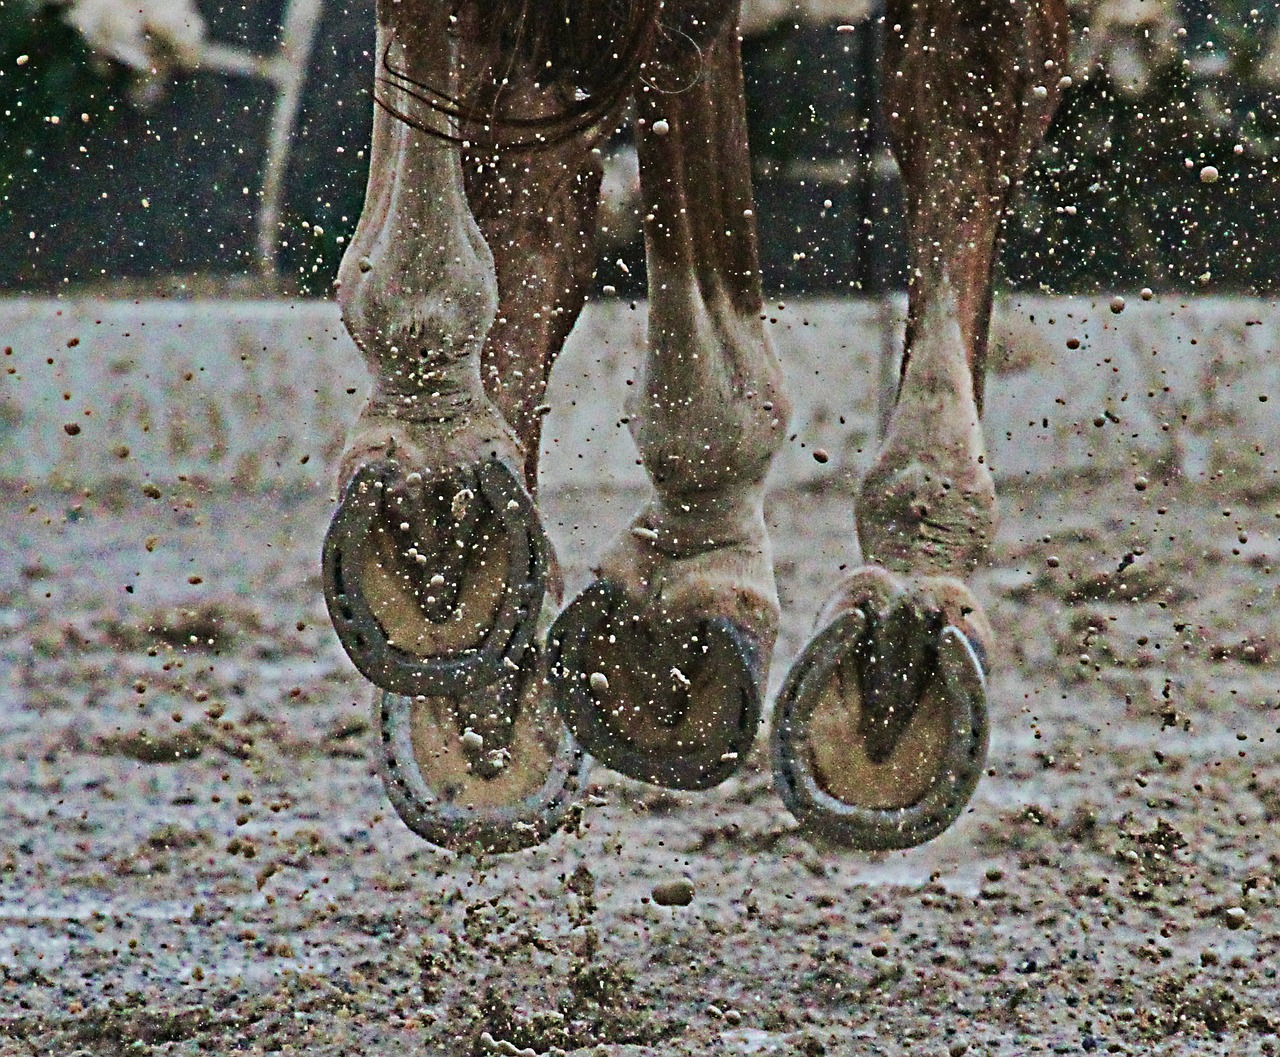 horse hooves with horseshoes galloping through mud